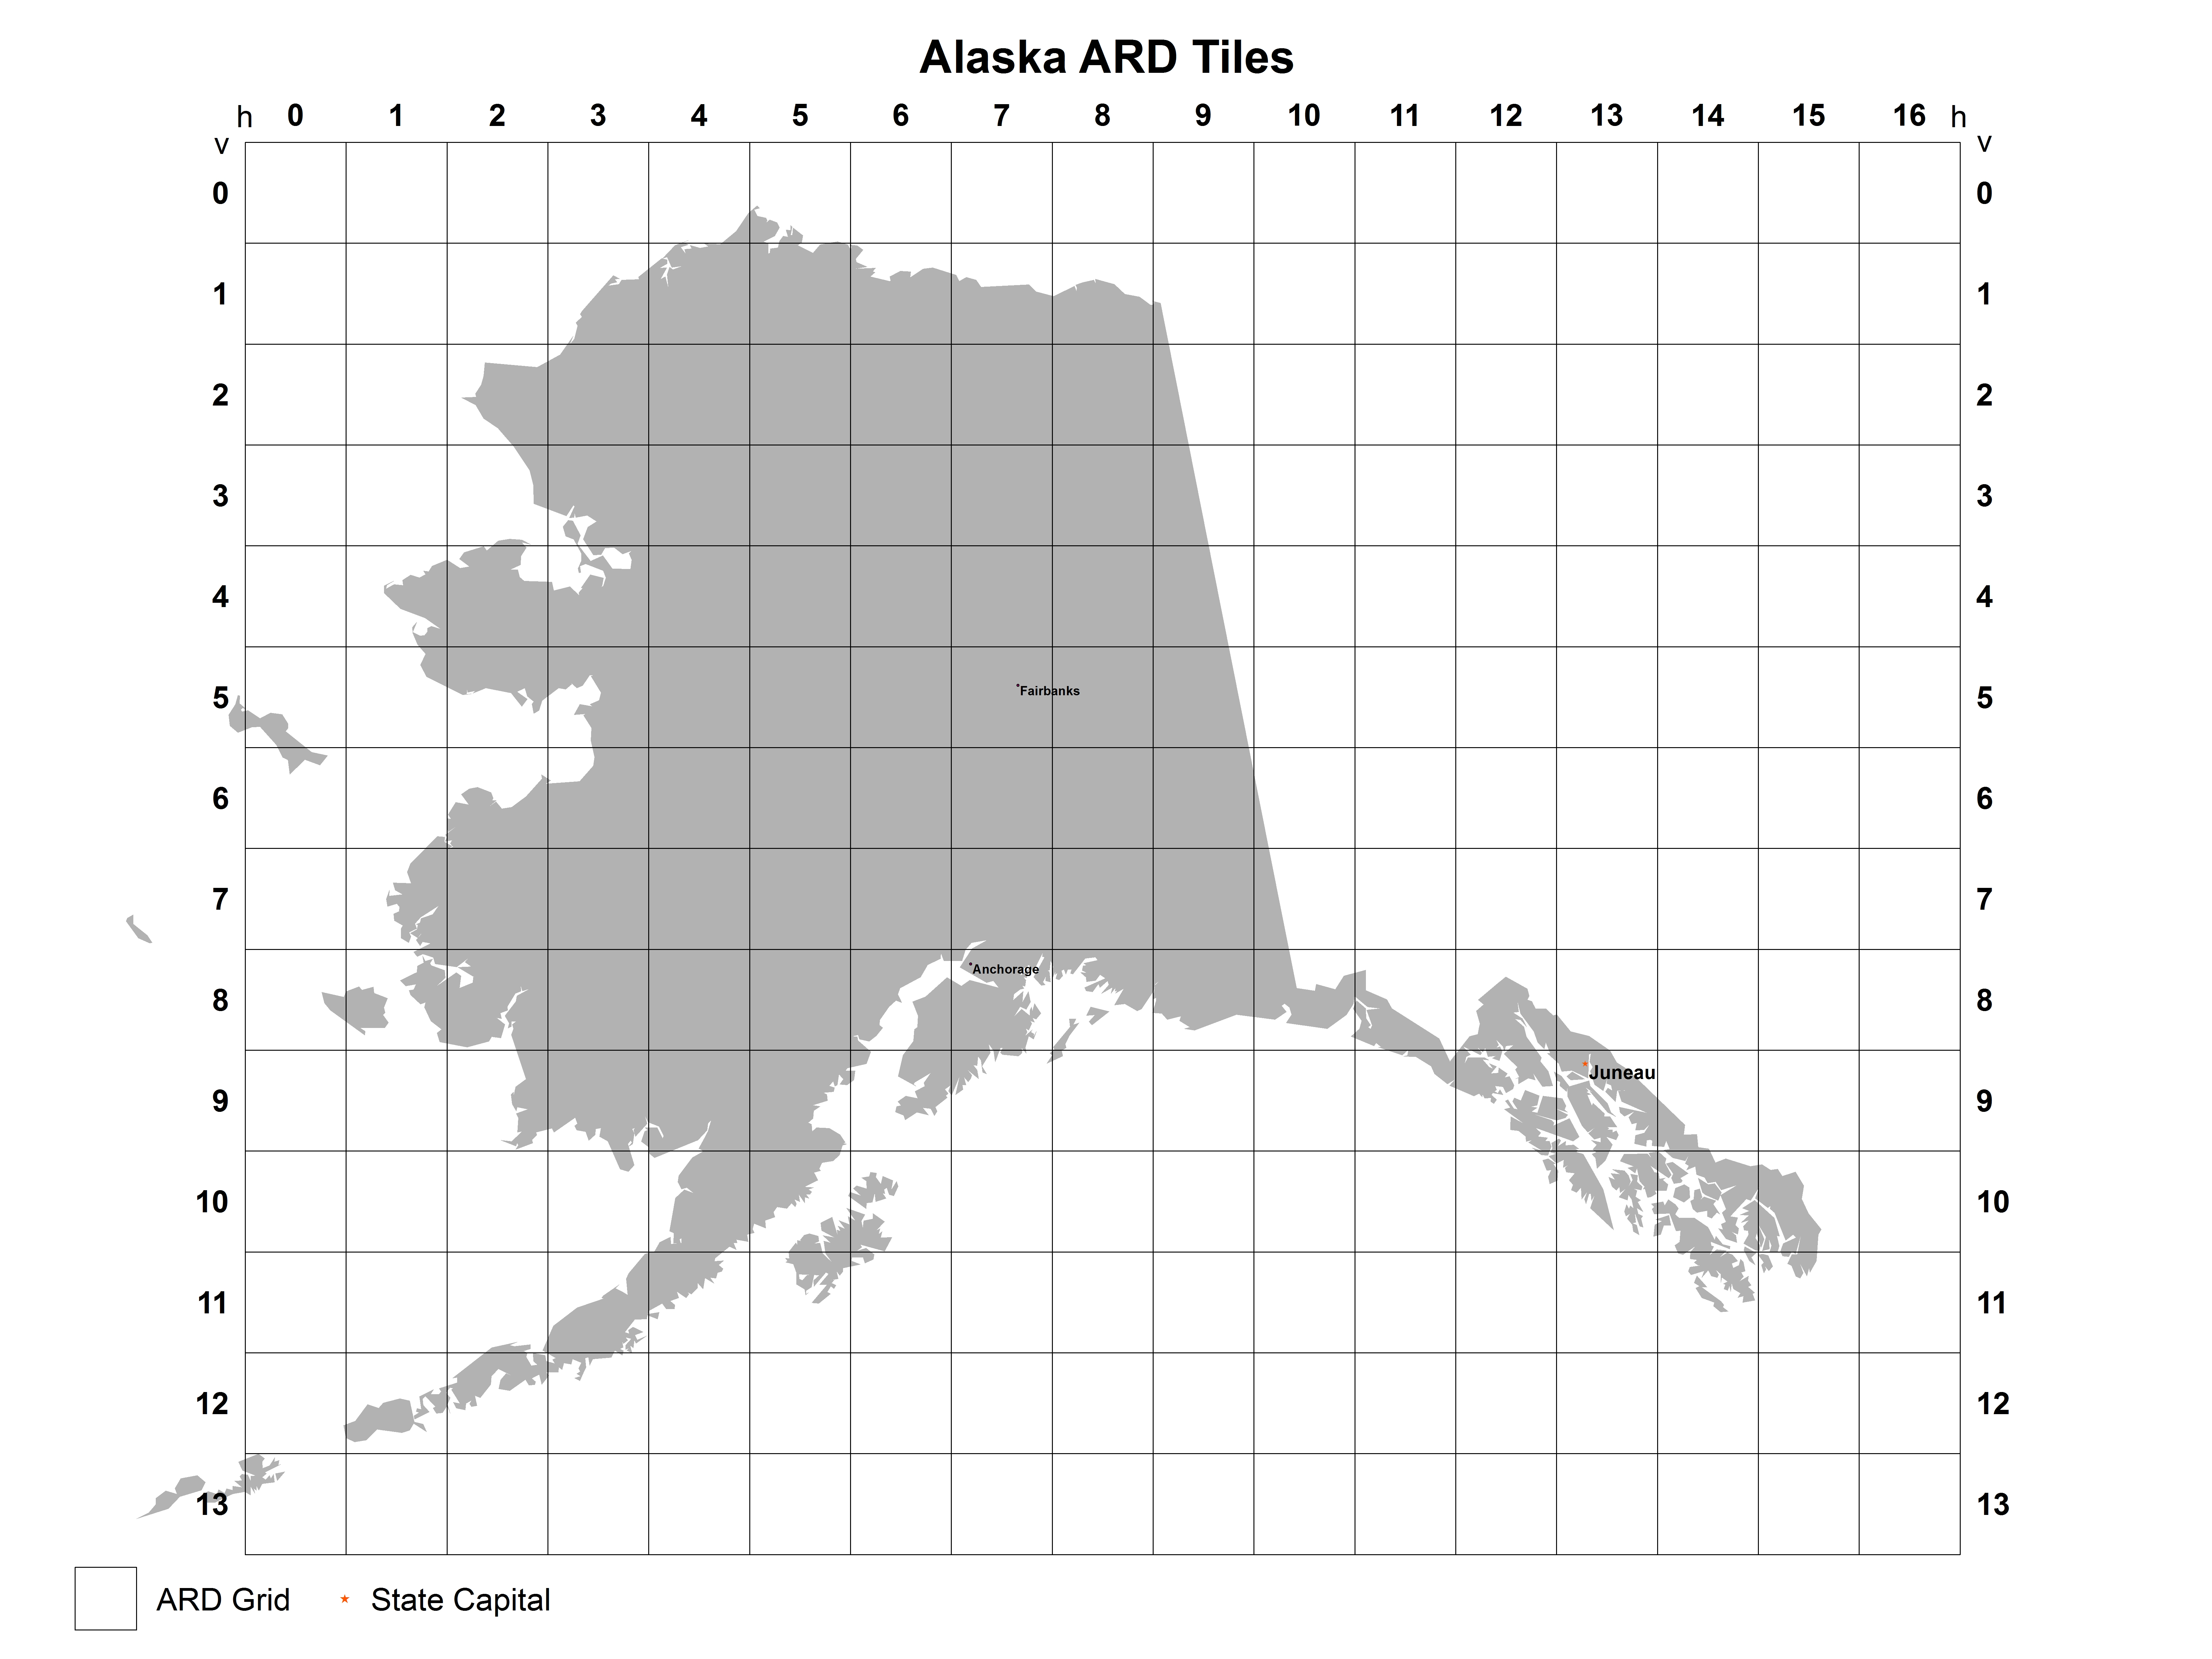 Alaska Analysis Ready Data (ARD) Tile Map